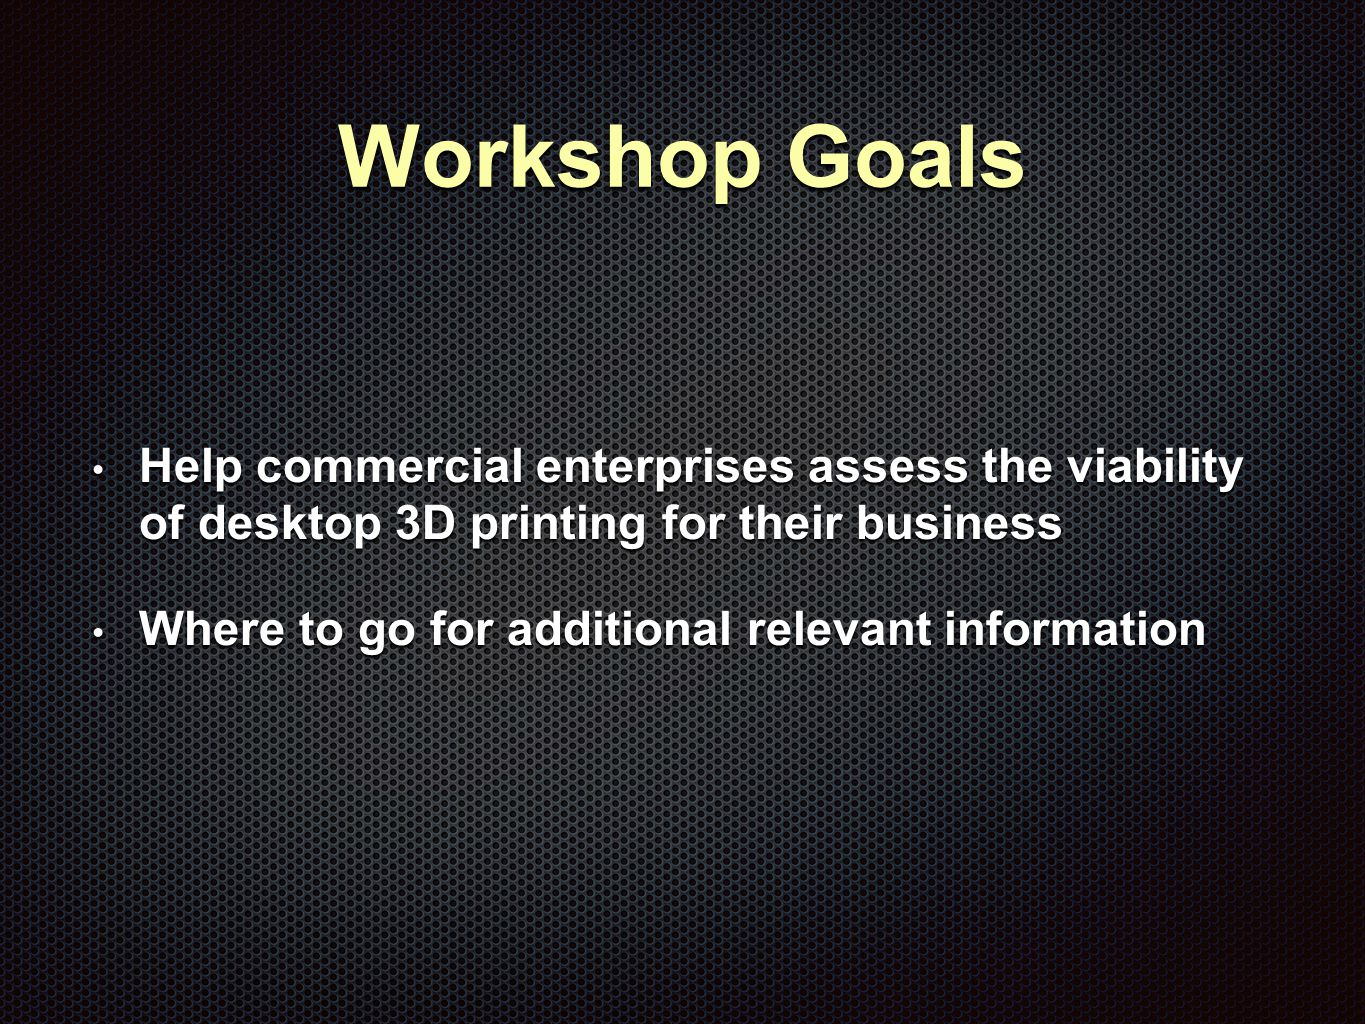 Workshop Goals Help commercial enterprises assess the viability of desktop 3D printing for their business Help commercial enterprises assess the viability of desktop 3D printing for their business Where to go for additional relevant information Where to go for additional relevant information